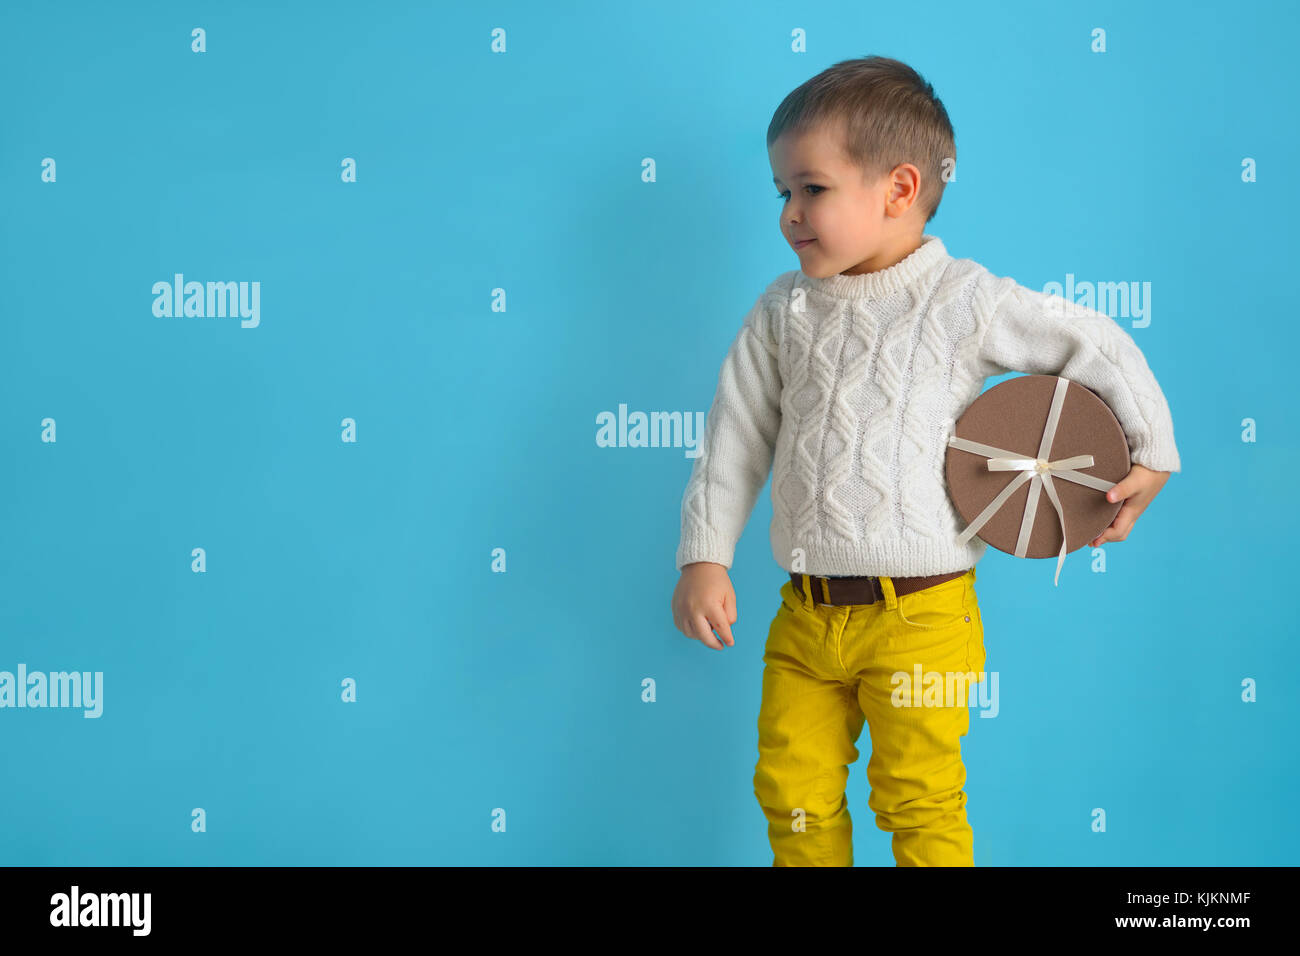 cunning little boy is holding a round gift box with a ribbon. A child in a white sweater on a studio blue background - Stock Image